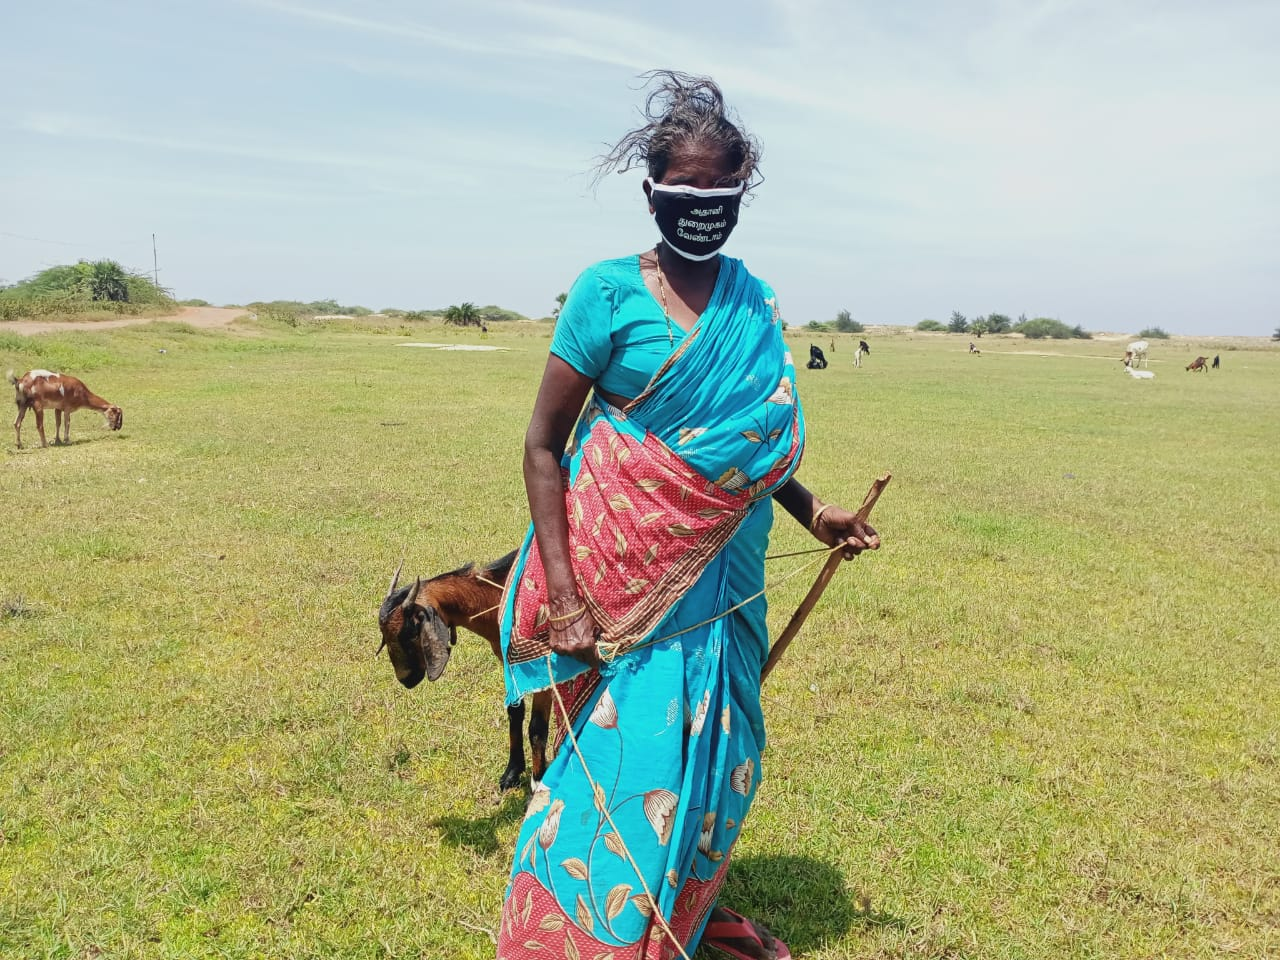 11. Where water ends and land begins lie acres of croplands and grazing commons. Goats are low-maintenance livestock that can be sold in a pinch for ready cash. The western edges of the Ennore-Pulicat wetlands boast a vibrant women-centred cattle economy.